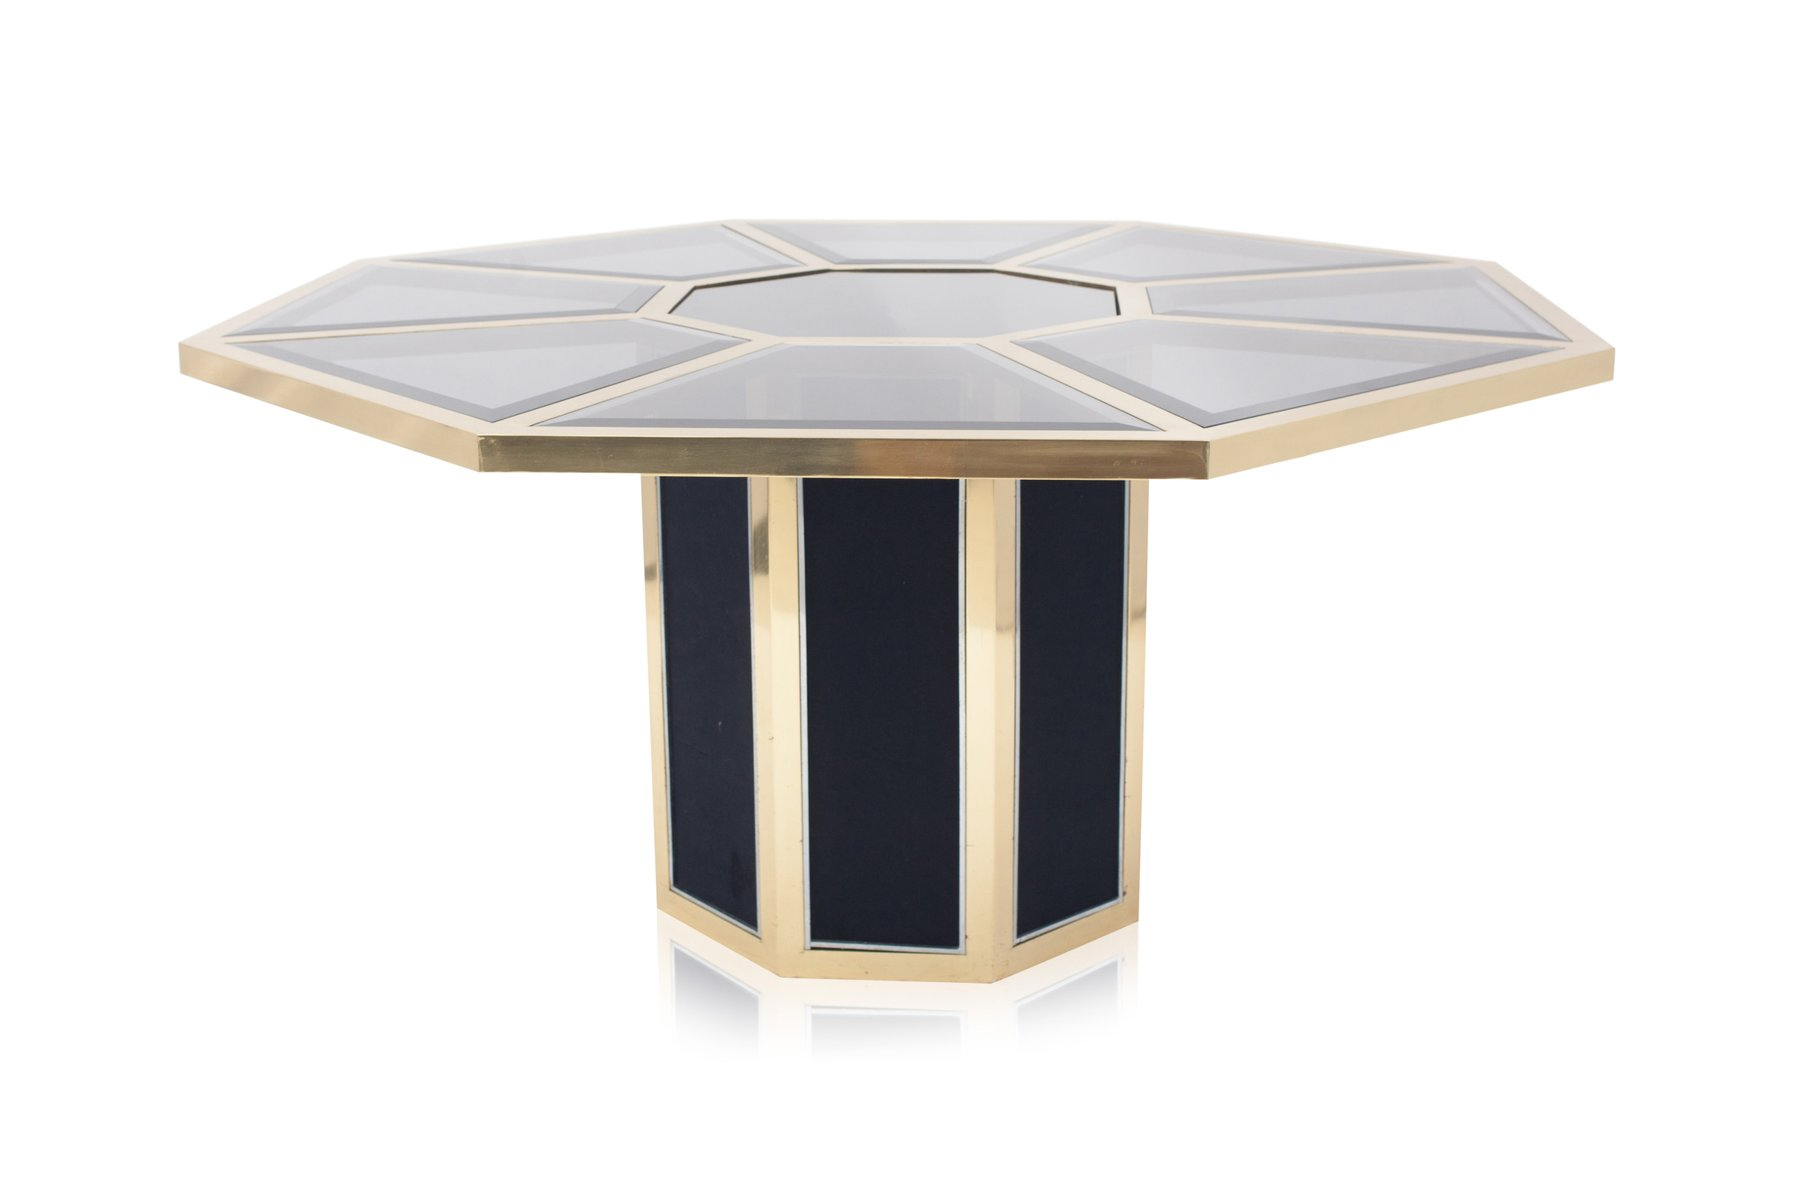 Octagonal Brass Dining Table from Roche Bobois 1970s for sale at